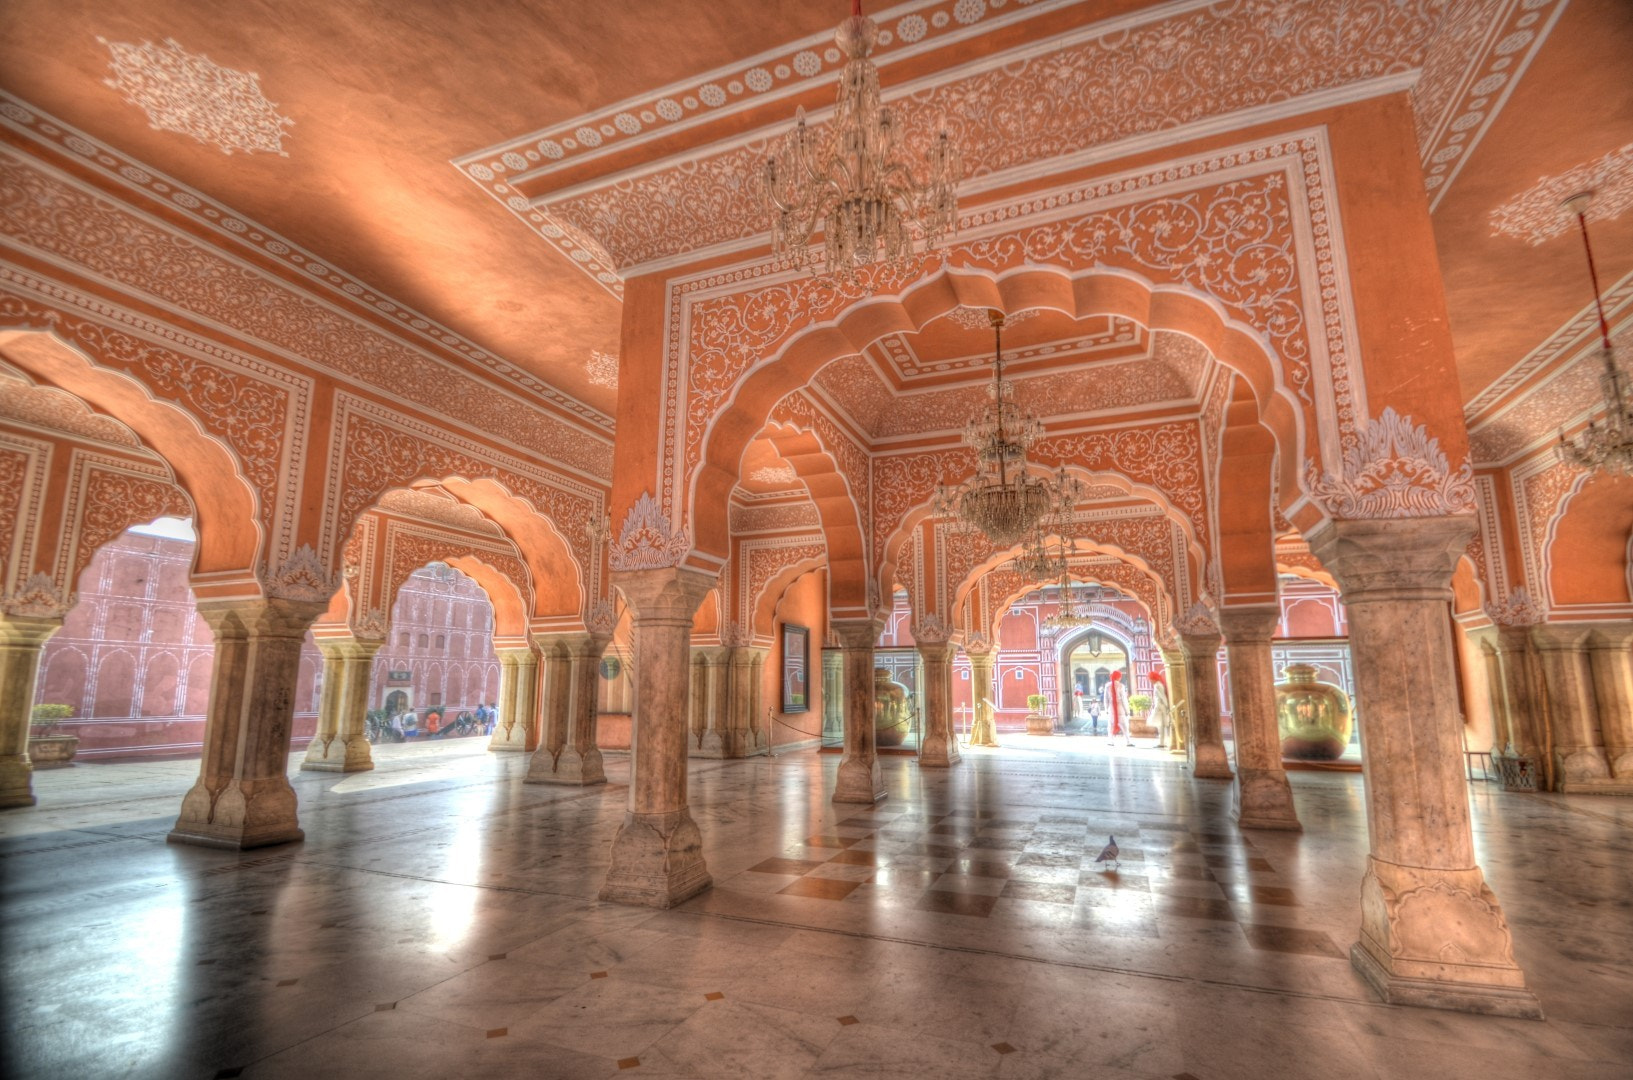 Photograph Jaipur Palace by Claudia Gadea on 500px